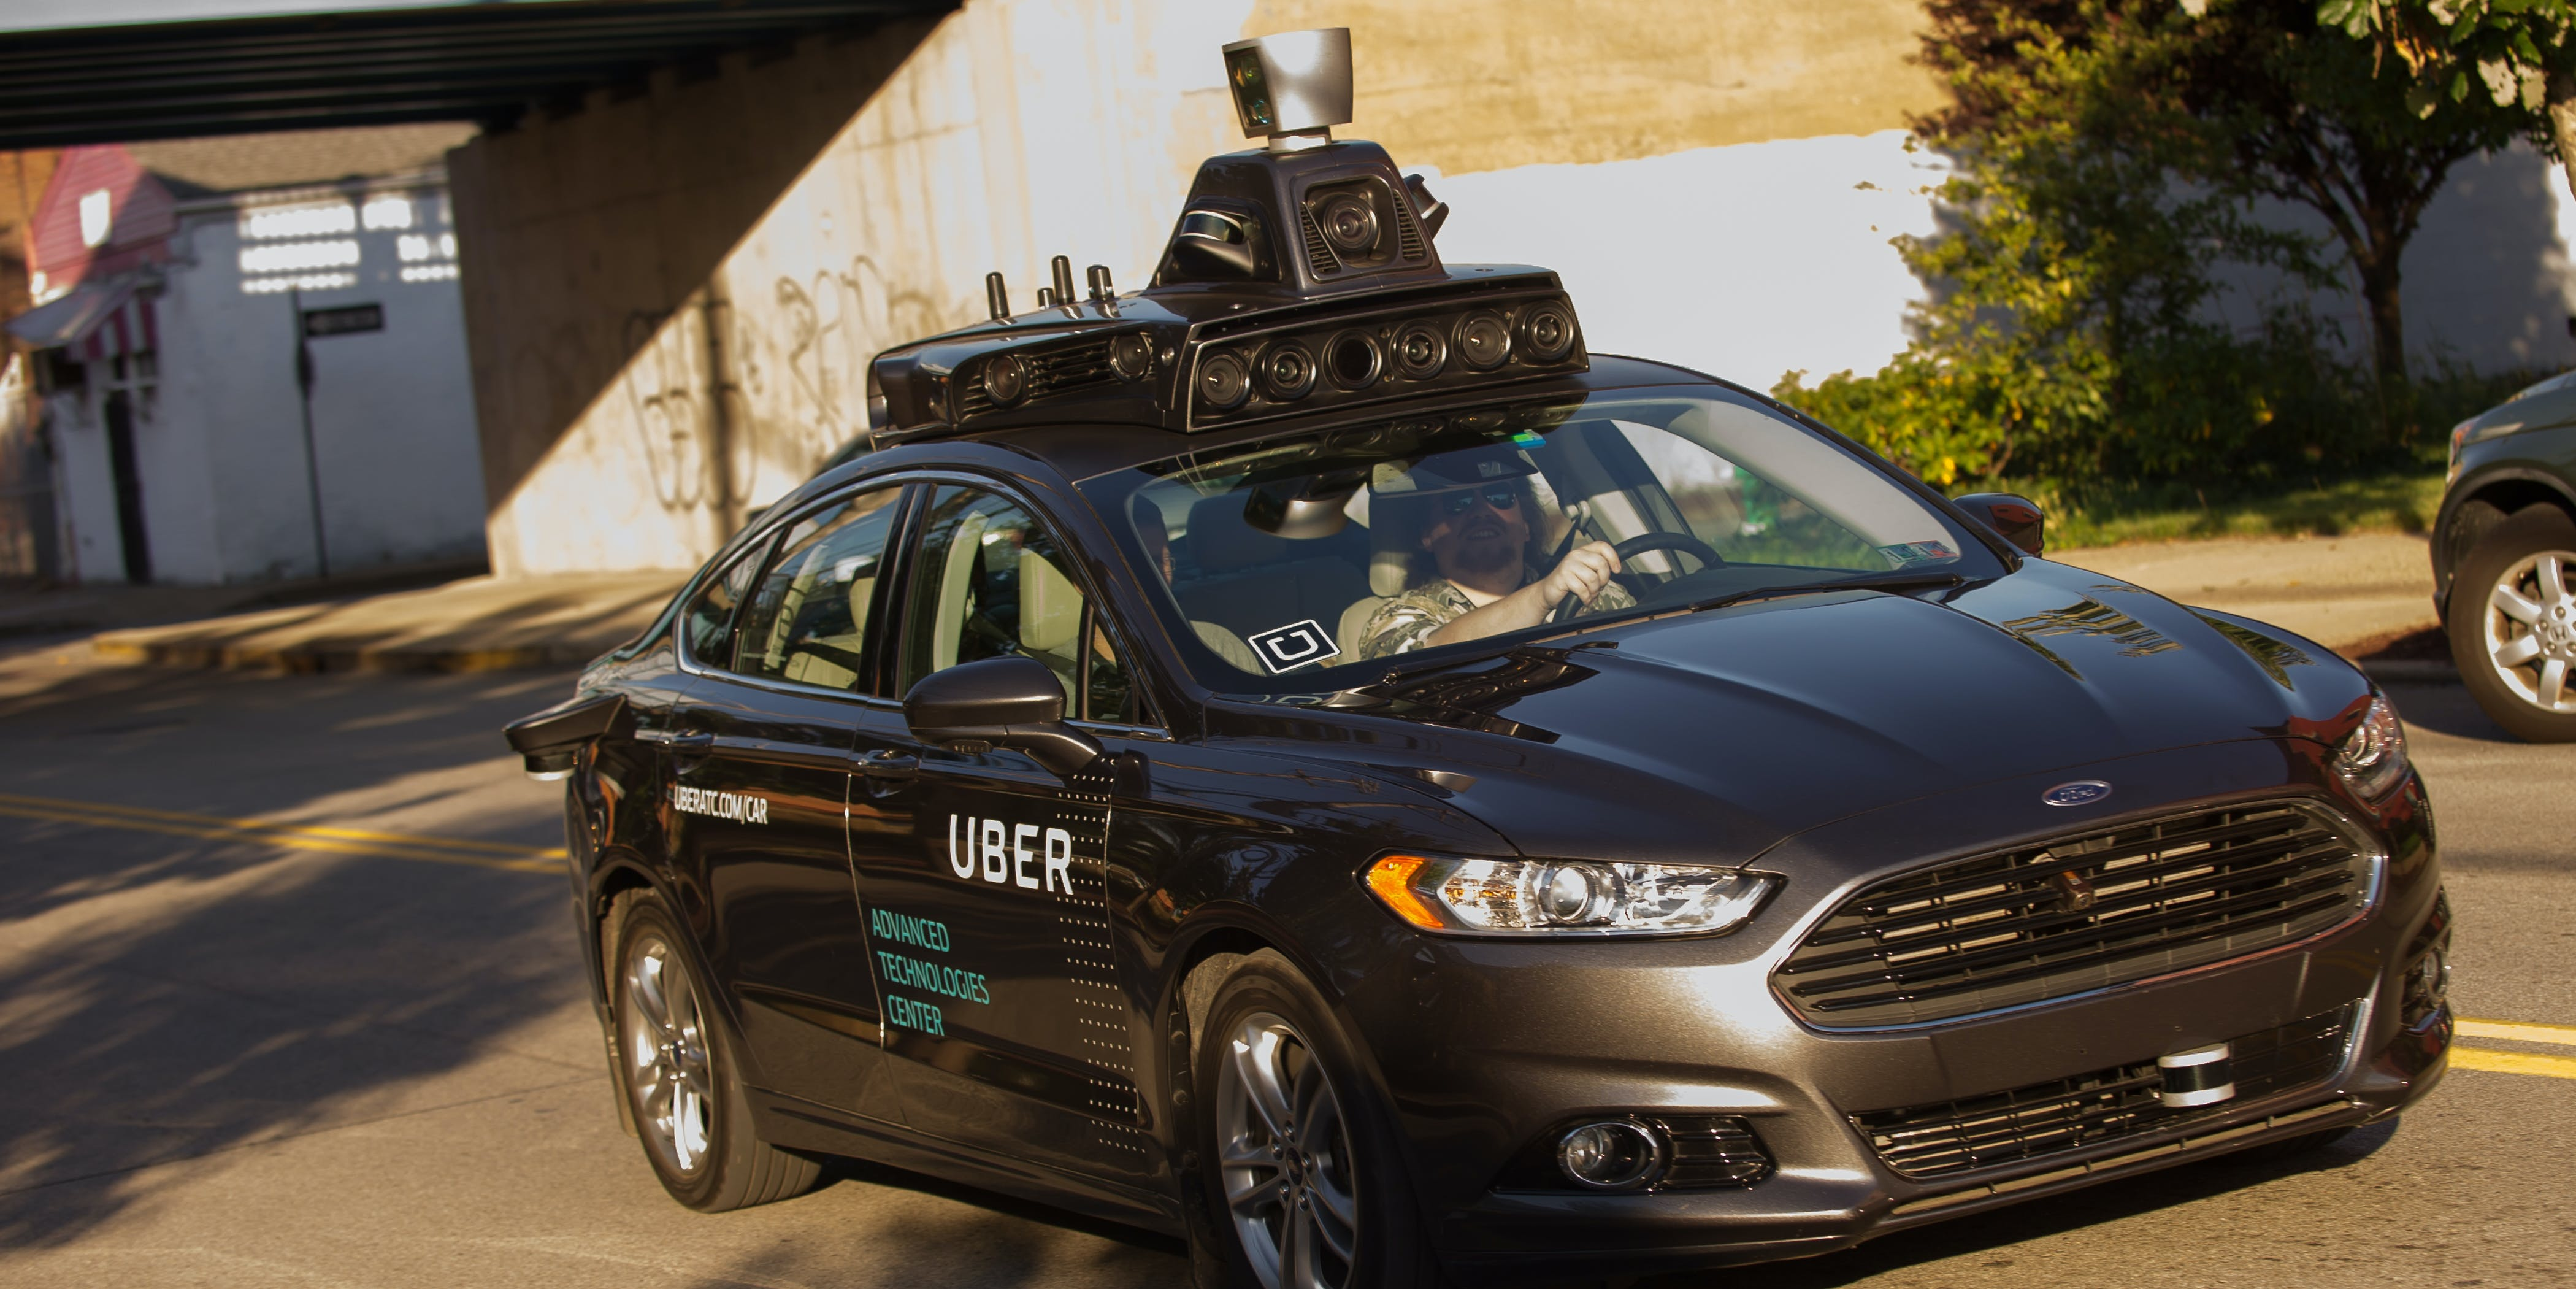 An Uber driverless Ford Fusion drives down Pittsburgh's Smallman Street.